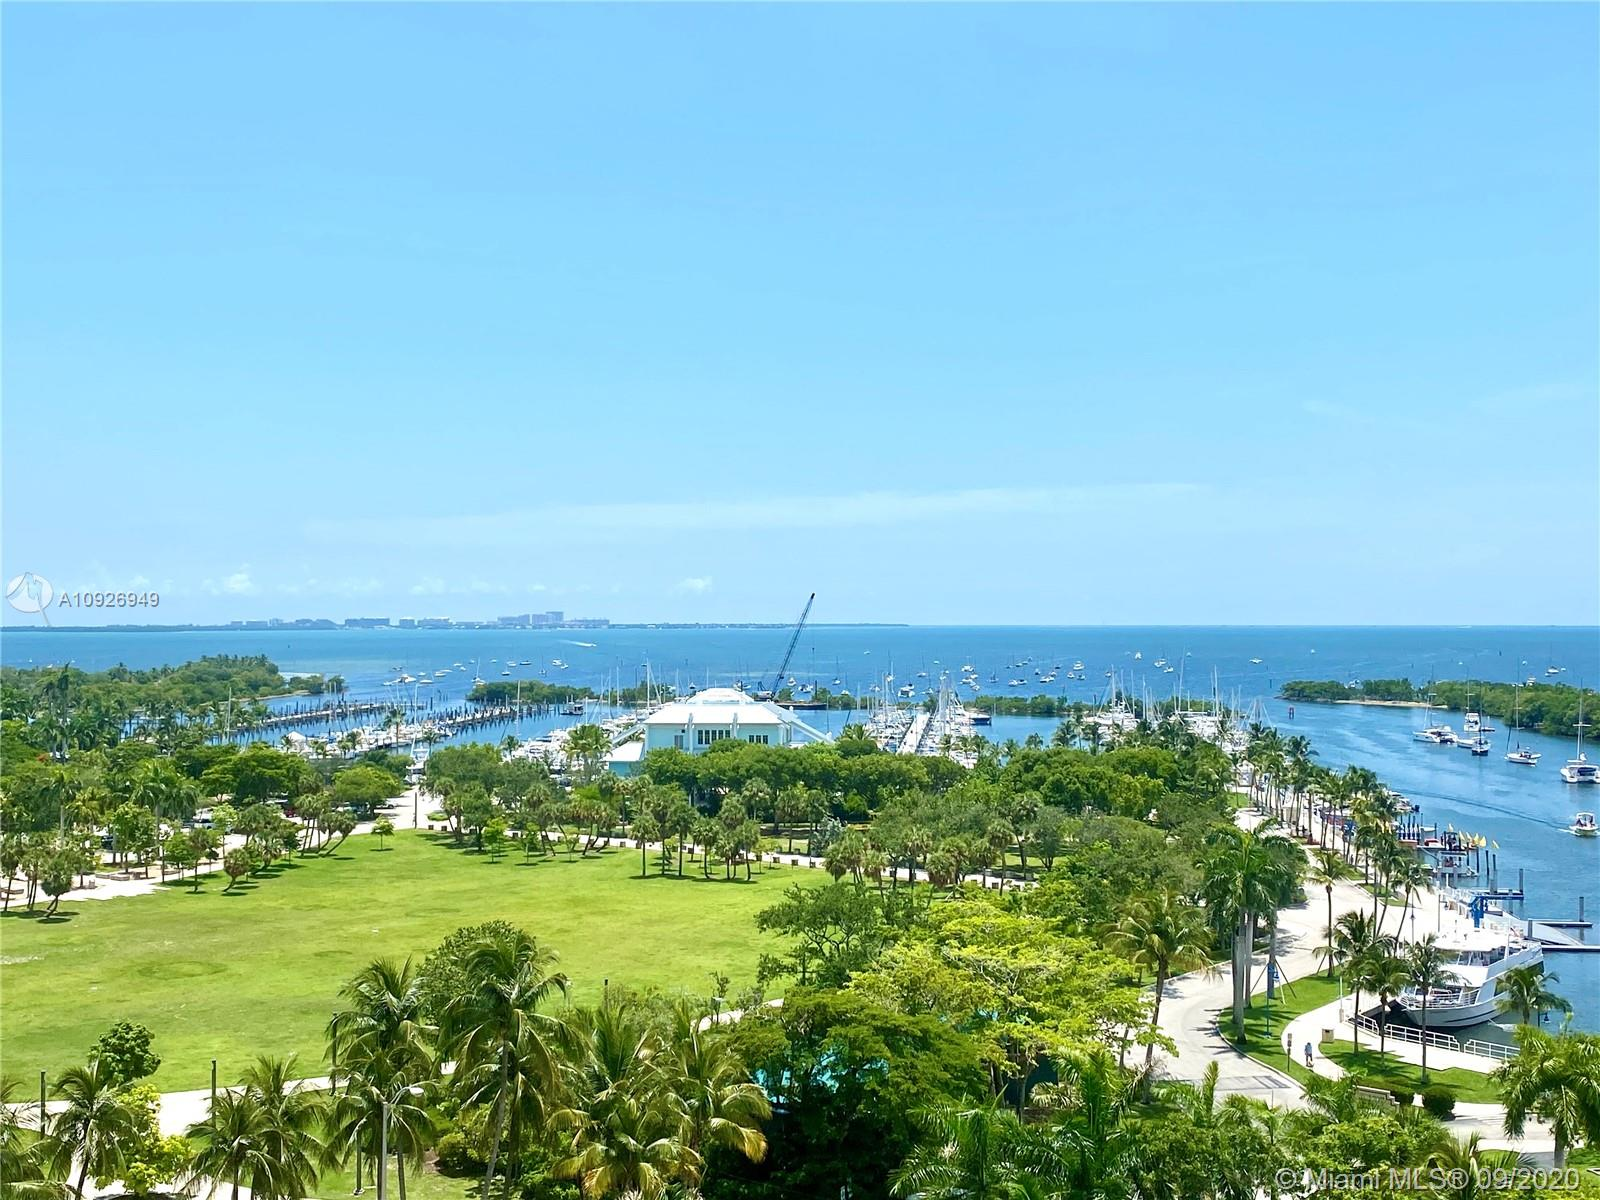 Overlooking the prized Biscayne Bay, this 3 bed condo welcomes you home to the newly delivered One Park Grove. A private elevator foyer opens to 2,884 sqft  with  12ft glass walls and a 393 sqft bayfront terrace highlighting the sensational views. Ready for your immediate enjoyment, 9B is finished with closets, drapes and light fixtures. It also boasts an open kitchen with upright wine fridge, marble countertops and high end appliances like Subzero and Wolf gas ranges, plus 2 water closets with Toto bidets in the main bath. Home to only 66 residence, One Park Grove features dedicated spa, sauna, fitness center, board room along with the 50,000 sqft of amenities of beautifully landscaped grounds. Also for rent at $16,000/month.